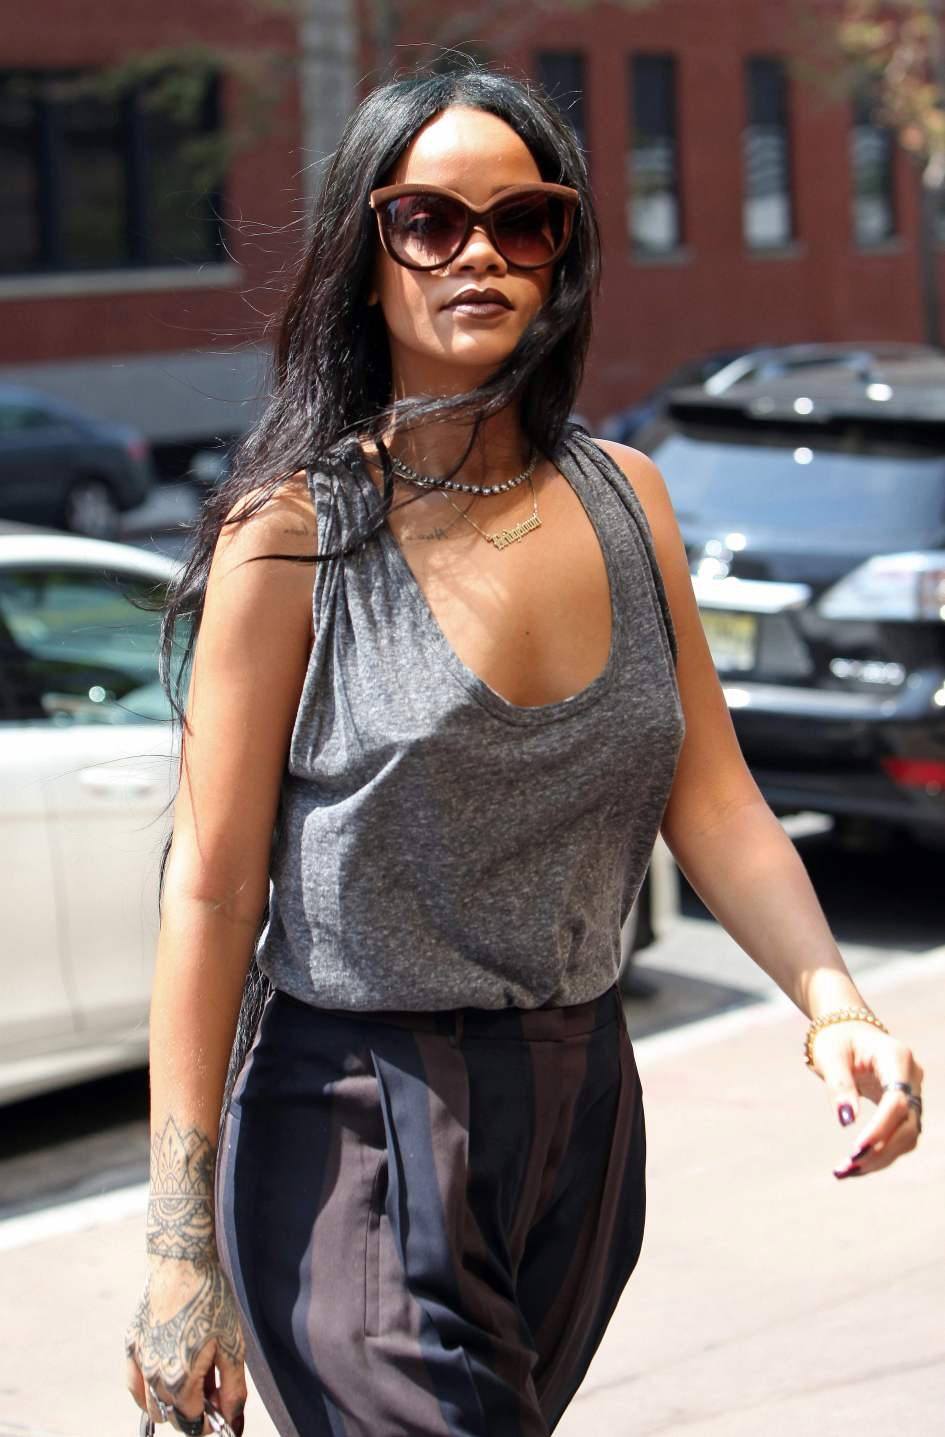 Here Is The Newest Trend Hitting The Red Carpet, Apparently braless9